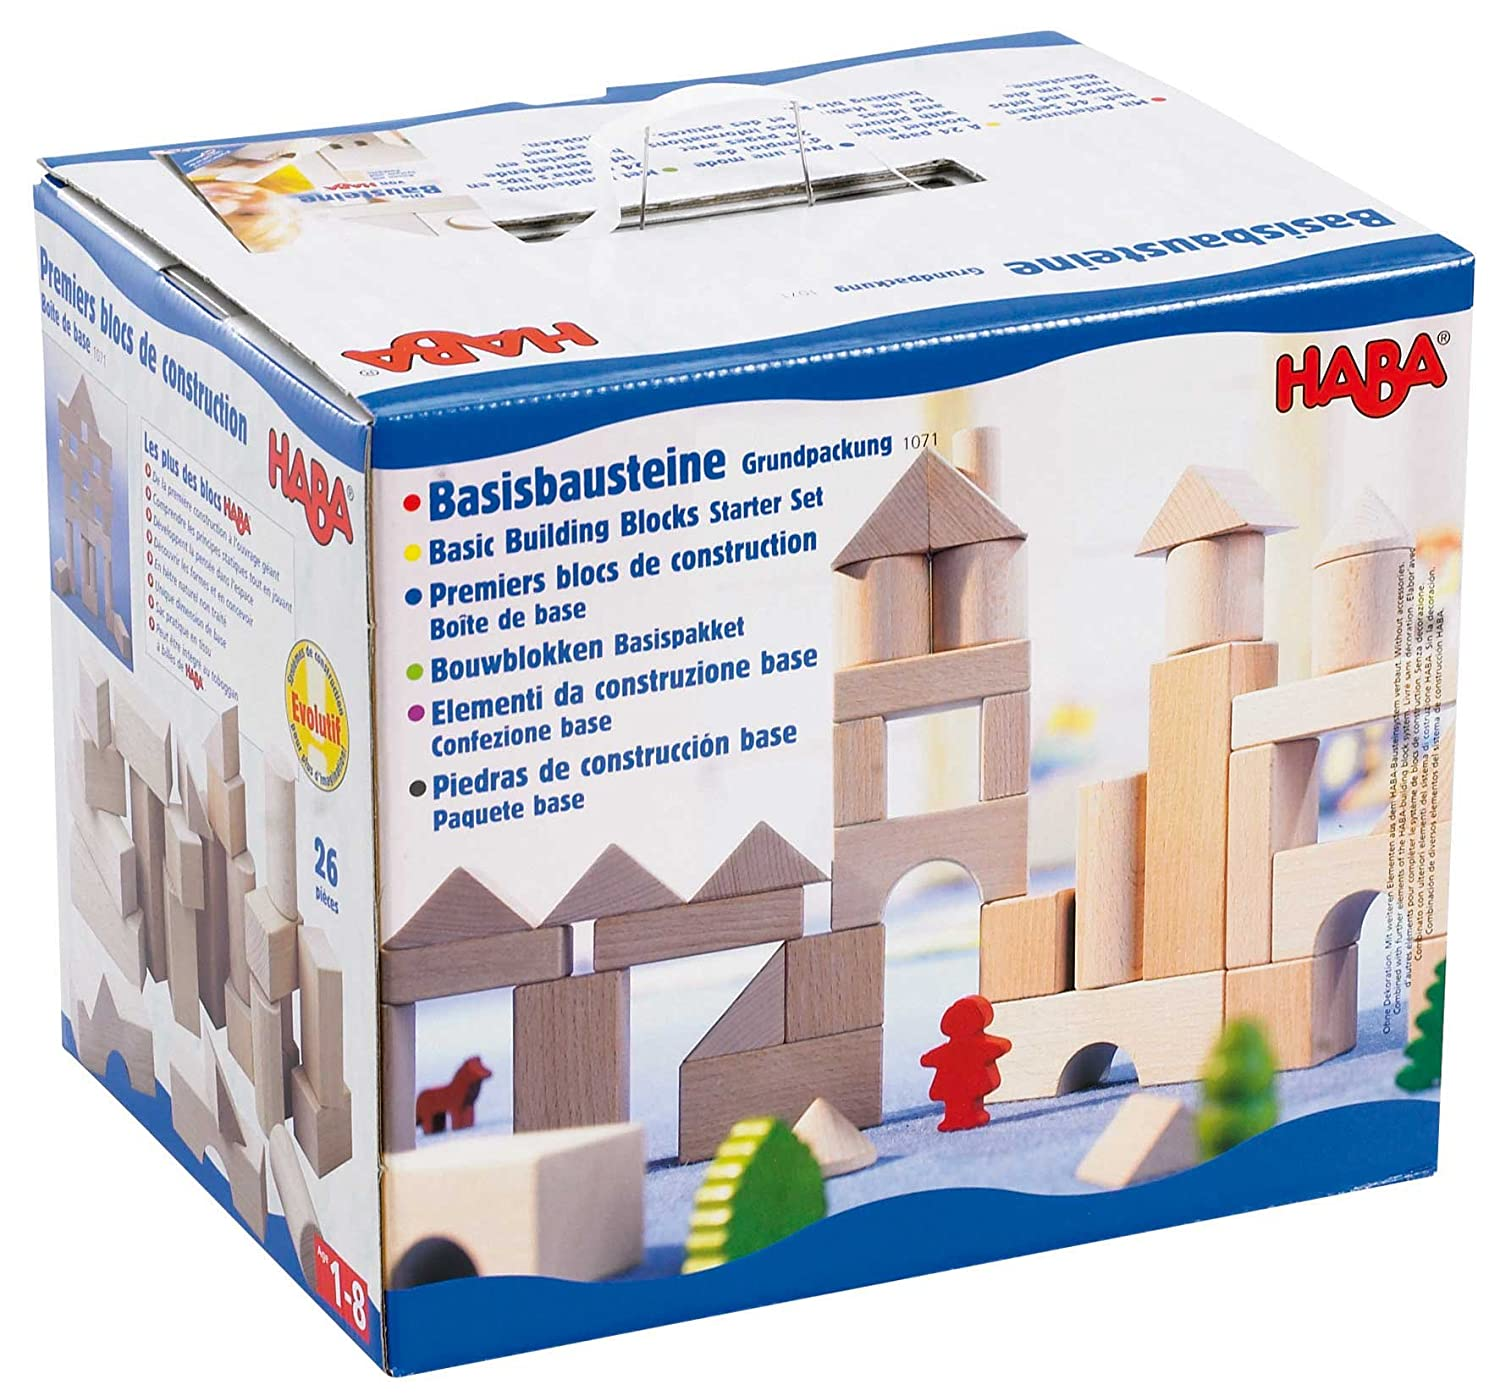 HABA Basic Building Blocks 26 Piece Starter Set Made in Germany 1071